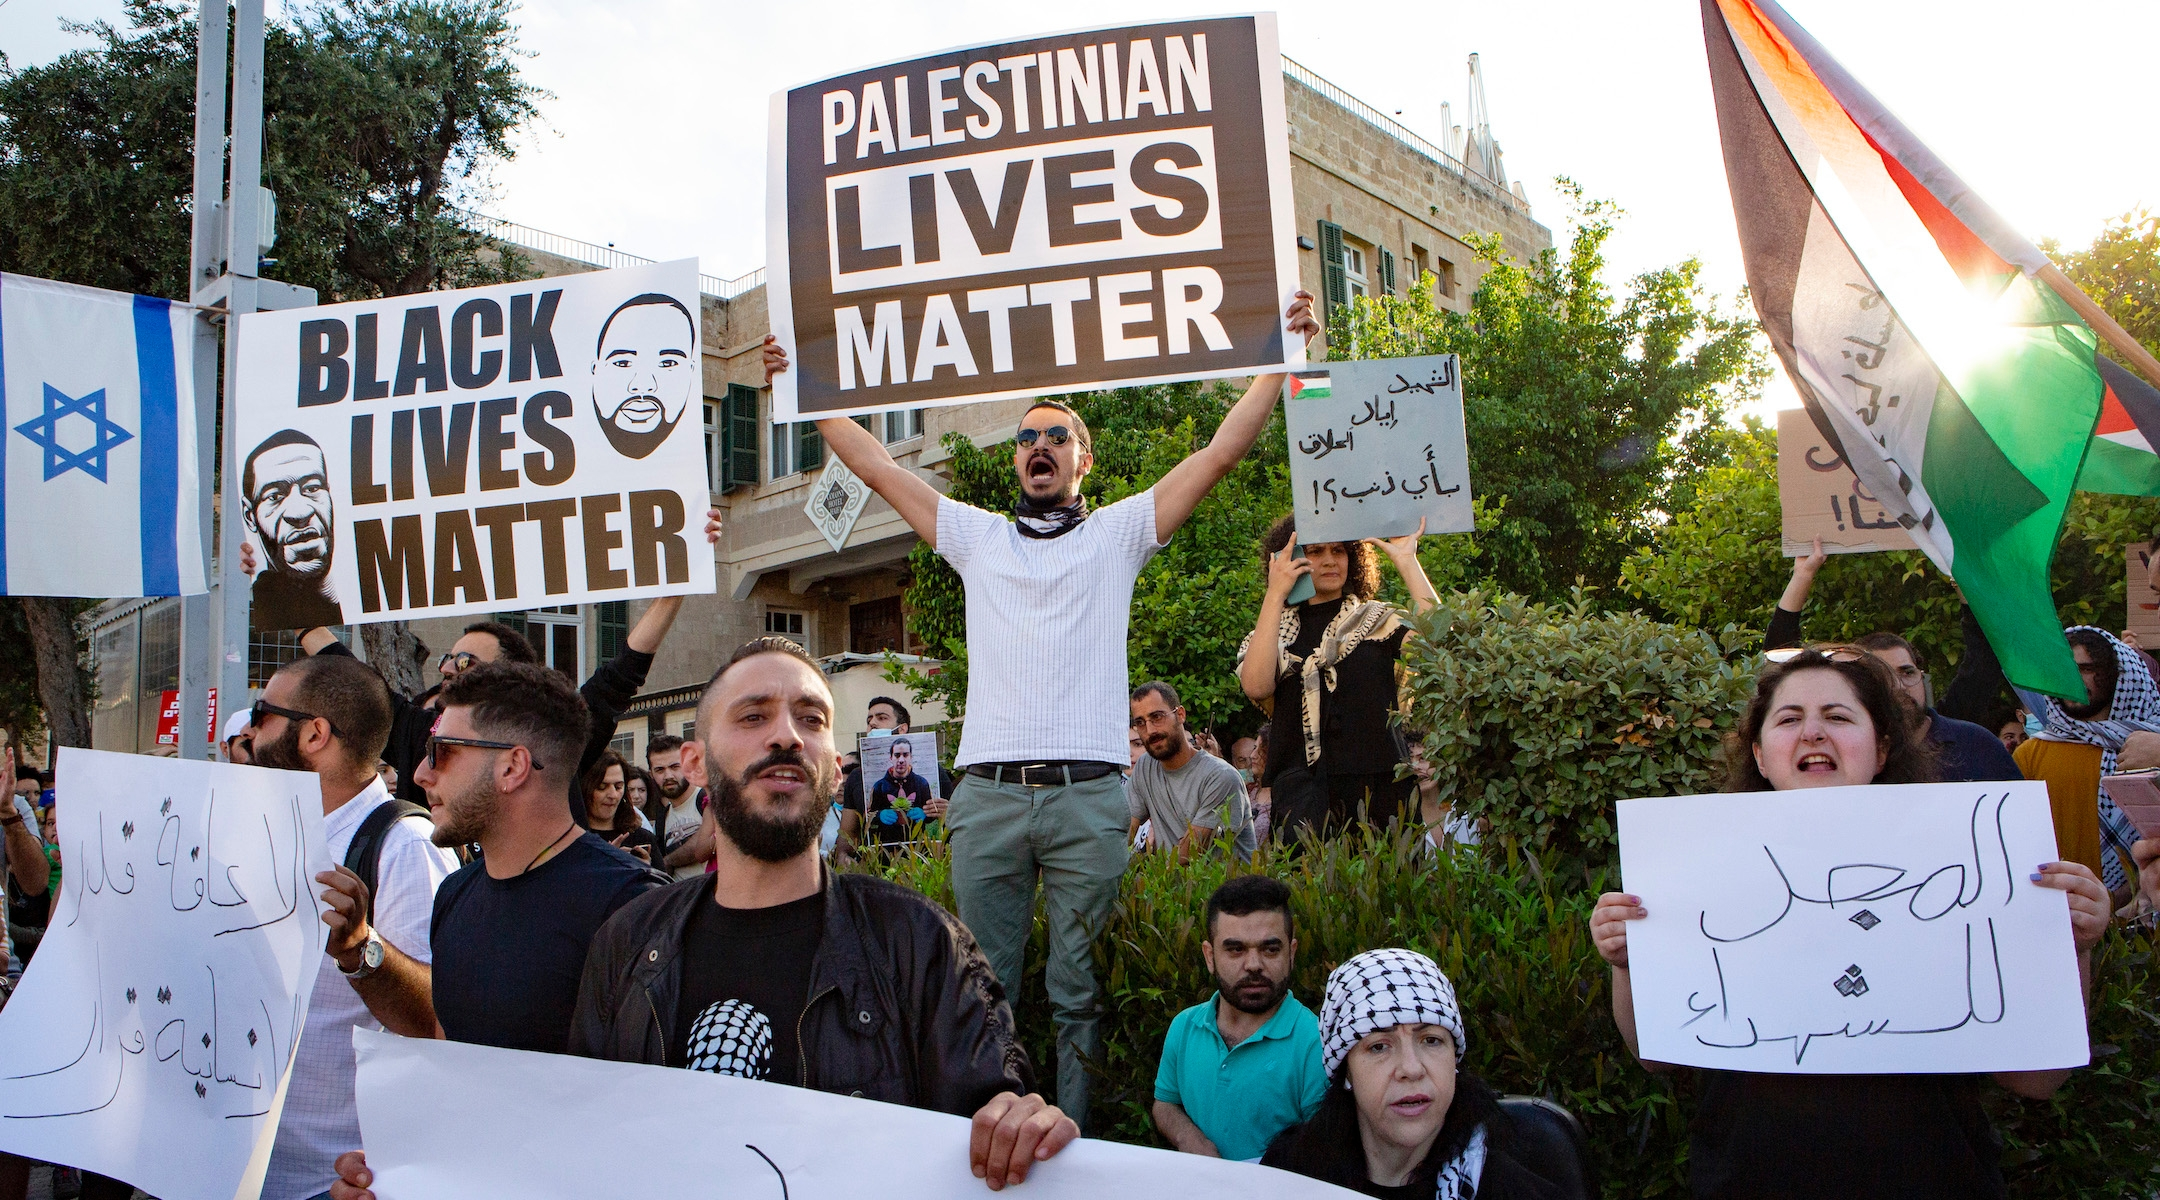 Hundreds of demonstrators in Haifa protest the recent Israeli police killing of an unarmed autistic Palestinian man, Iyad el-Hallak, on Tuesday, June 2 , 2020. Protesters in Israel and the United States have sought to link police violence in both countries. (Mati Milstein/NurPhoto via Getty Images)